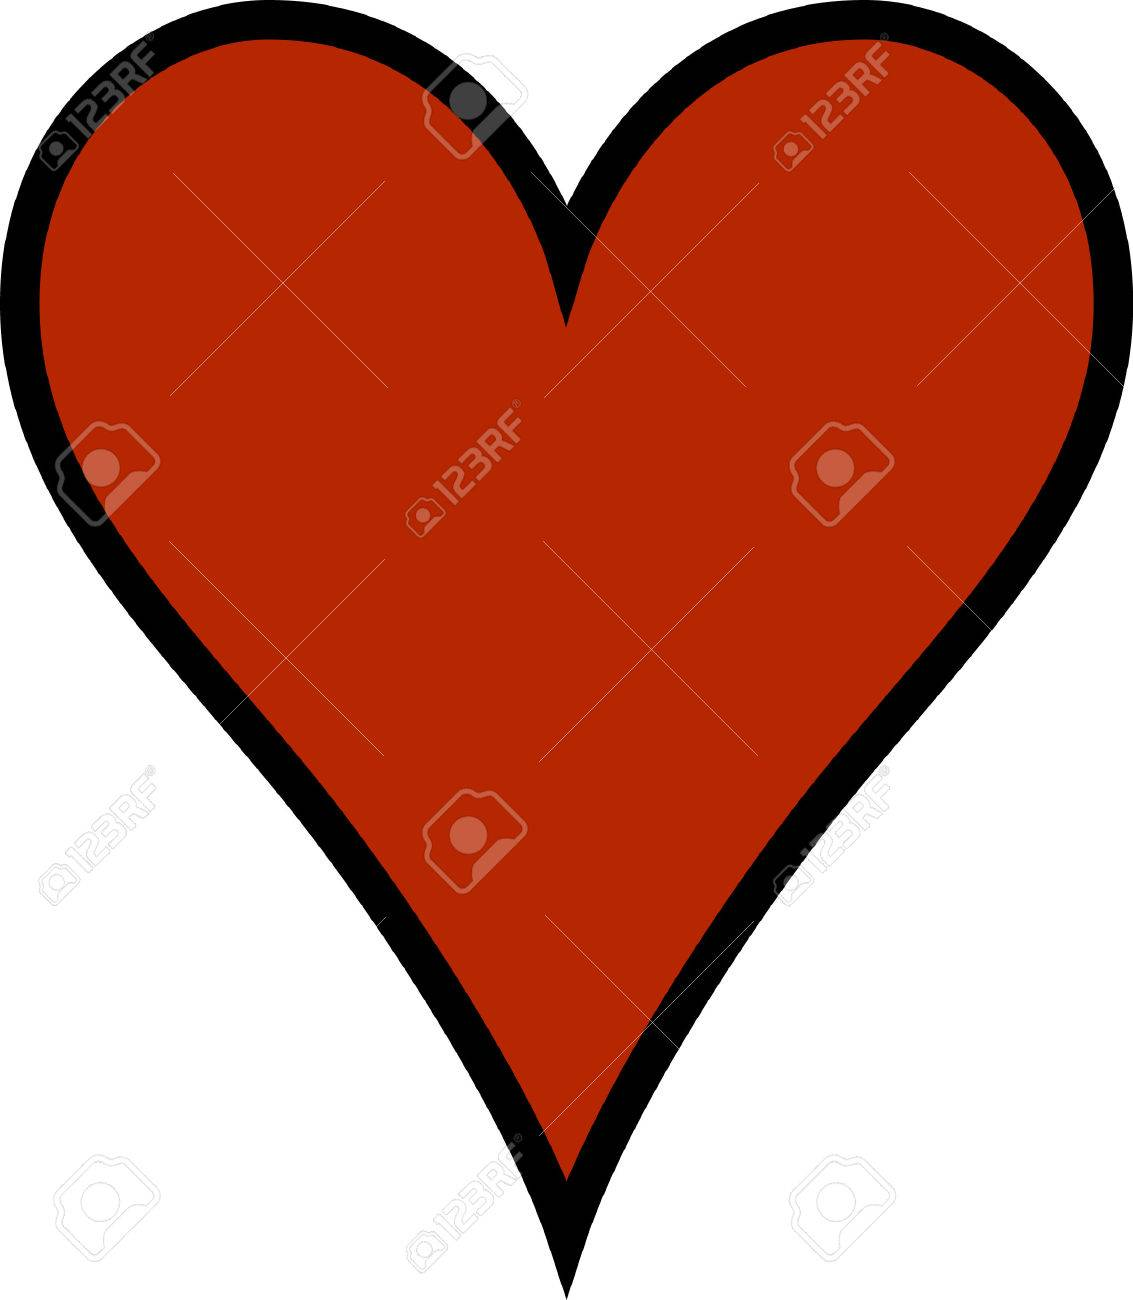 A simple heart says so much.  Add your own text for a personal message!  Perfect for SVG cuts or printing your own Valentines. Stock Vector - 51222551